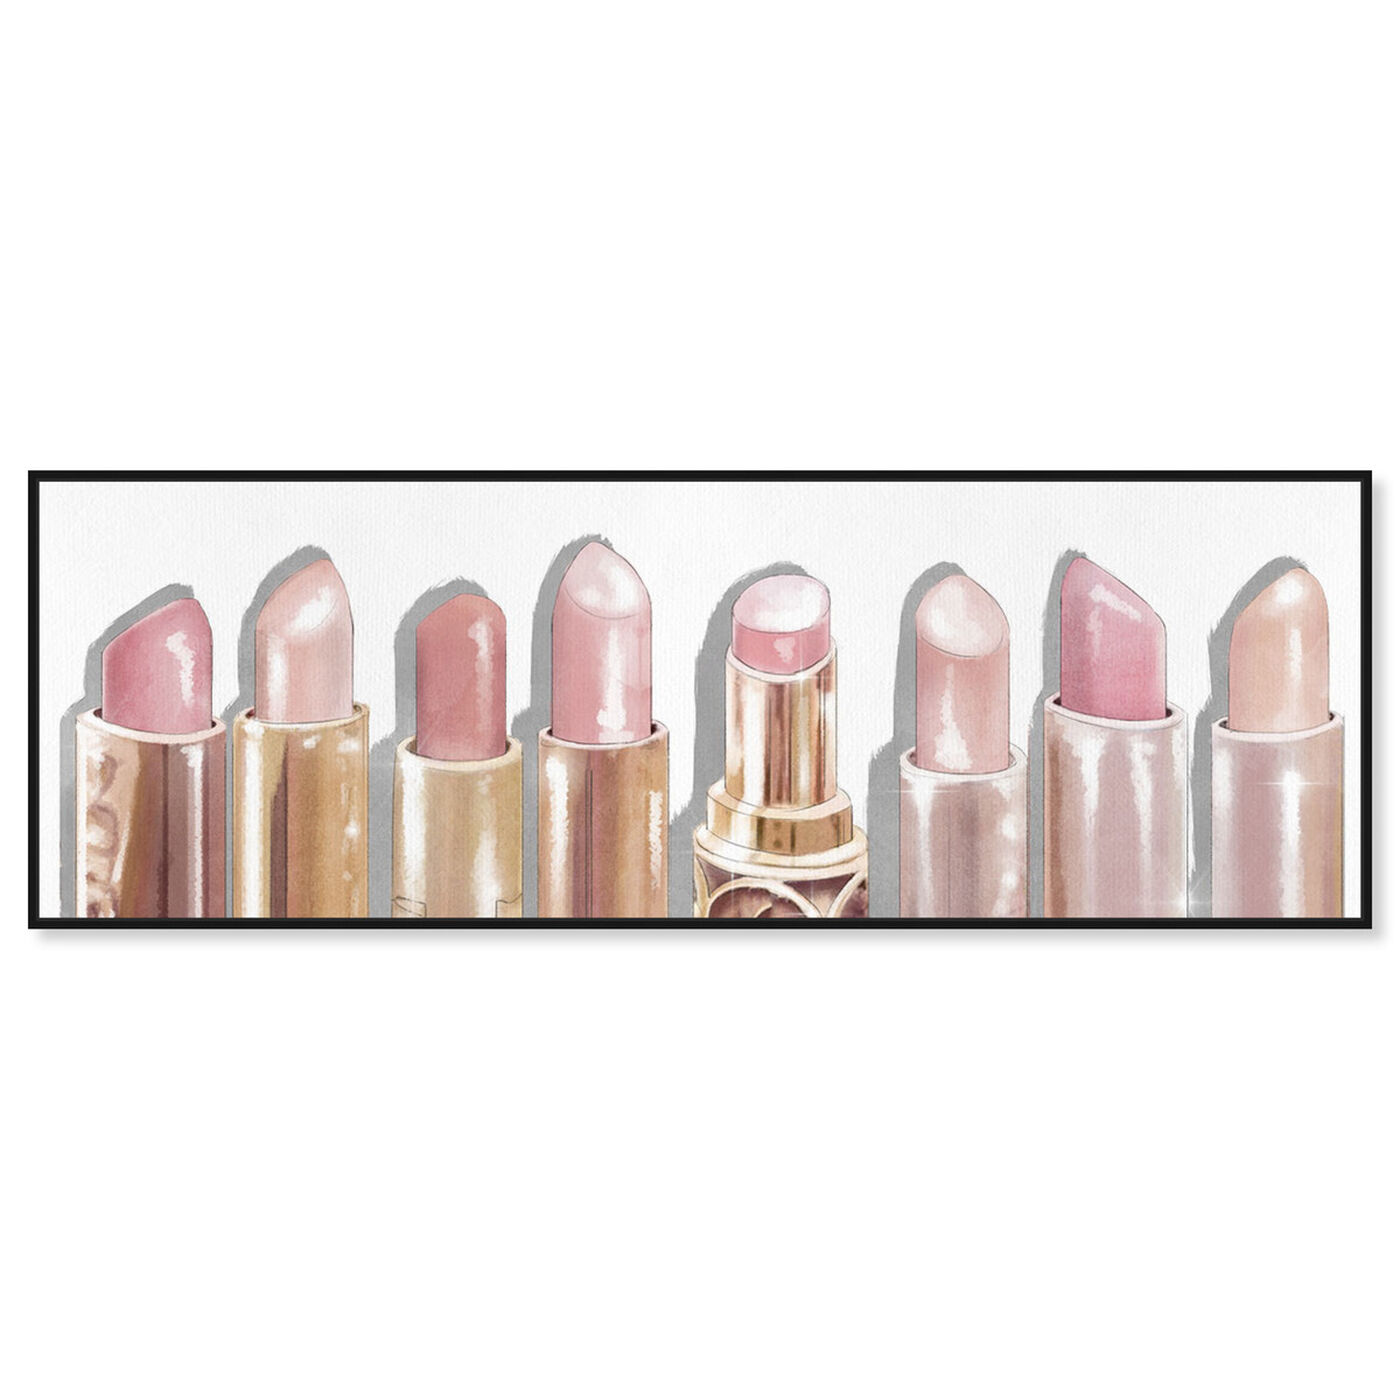 Front view of Lipstick Shades featuring fashion and glam and makeup art.